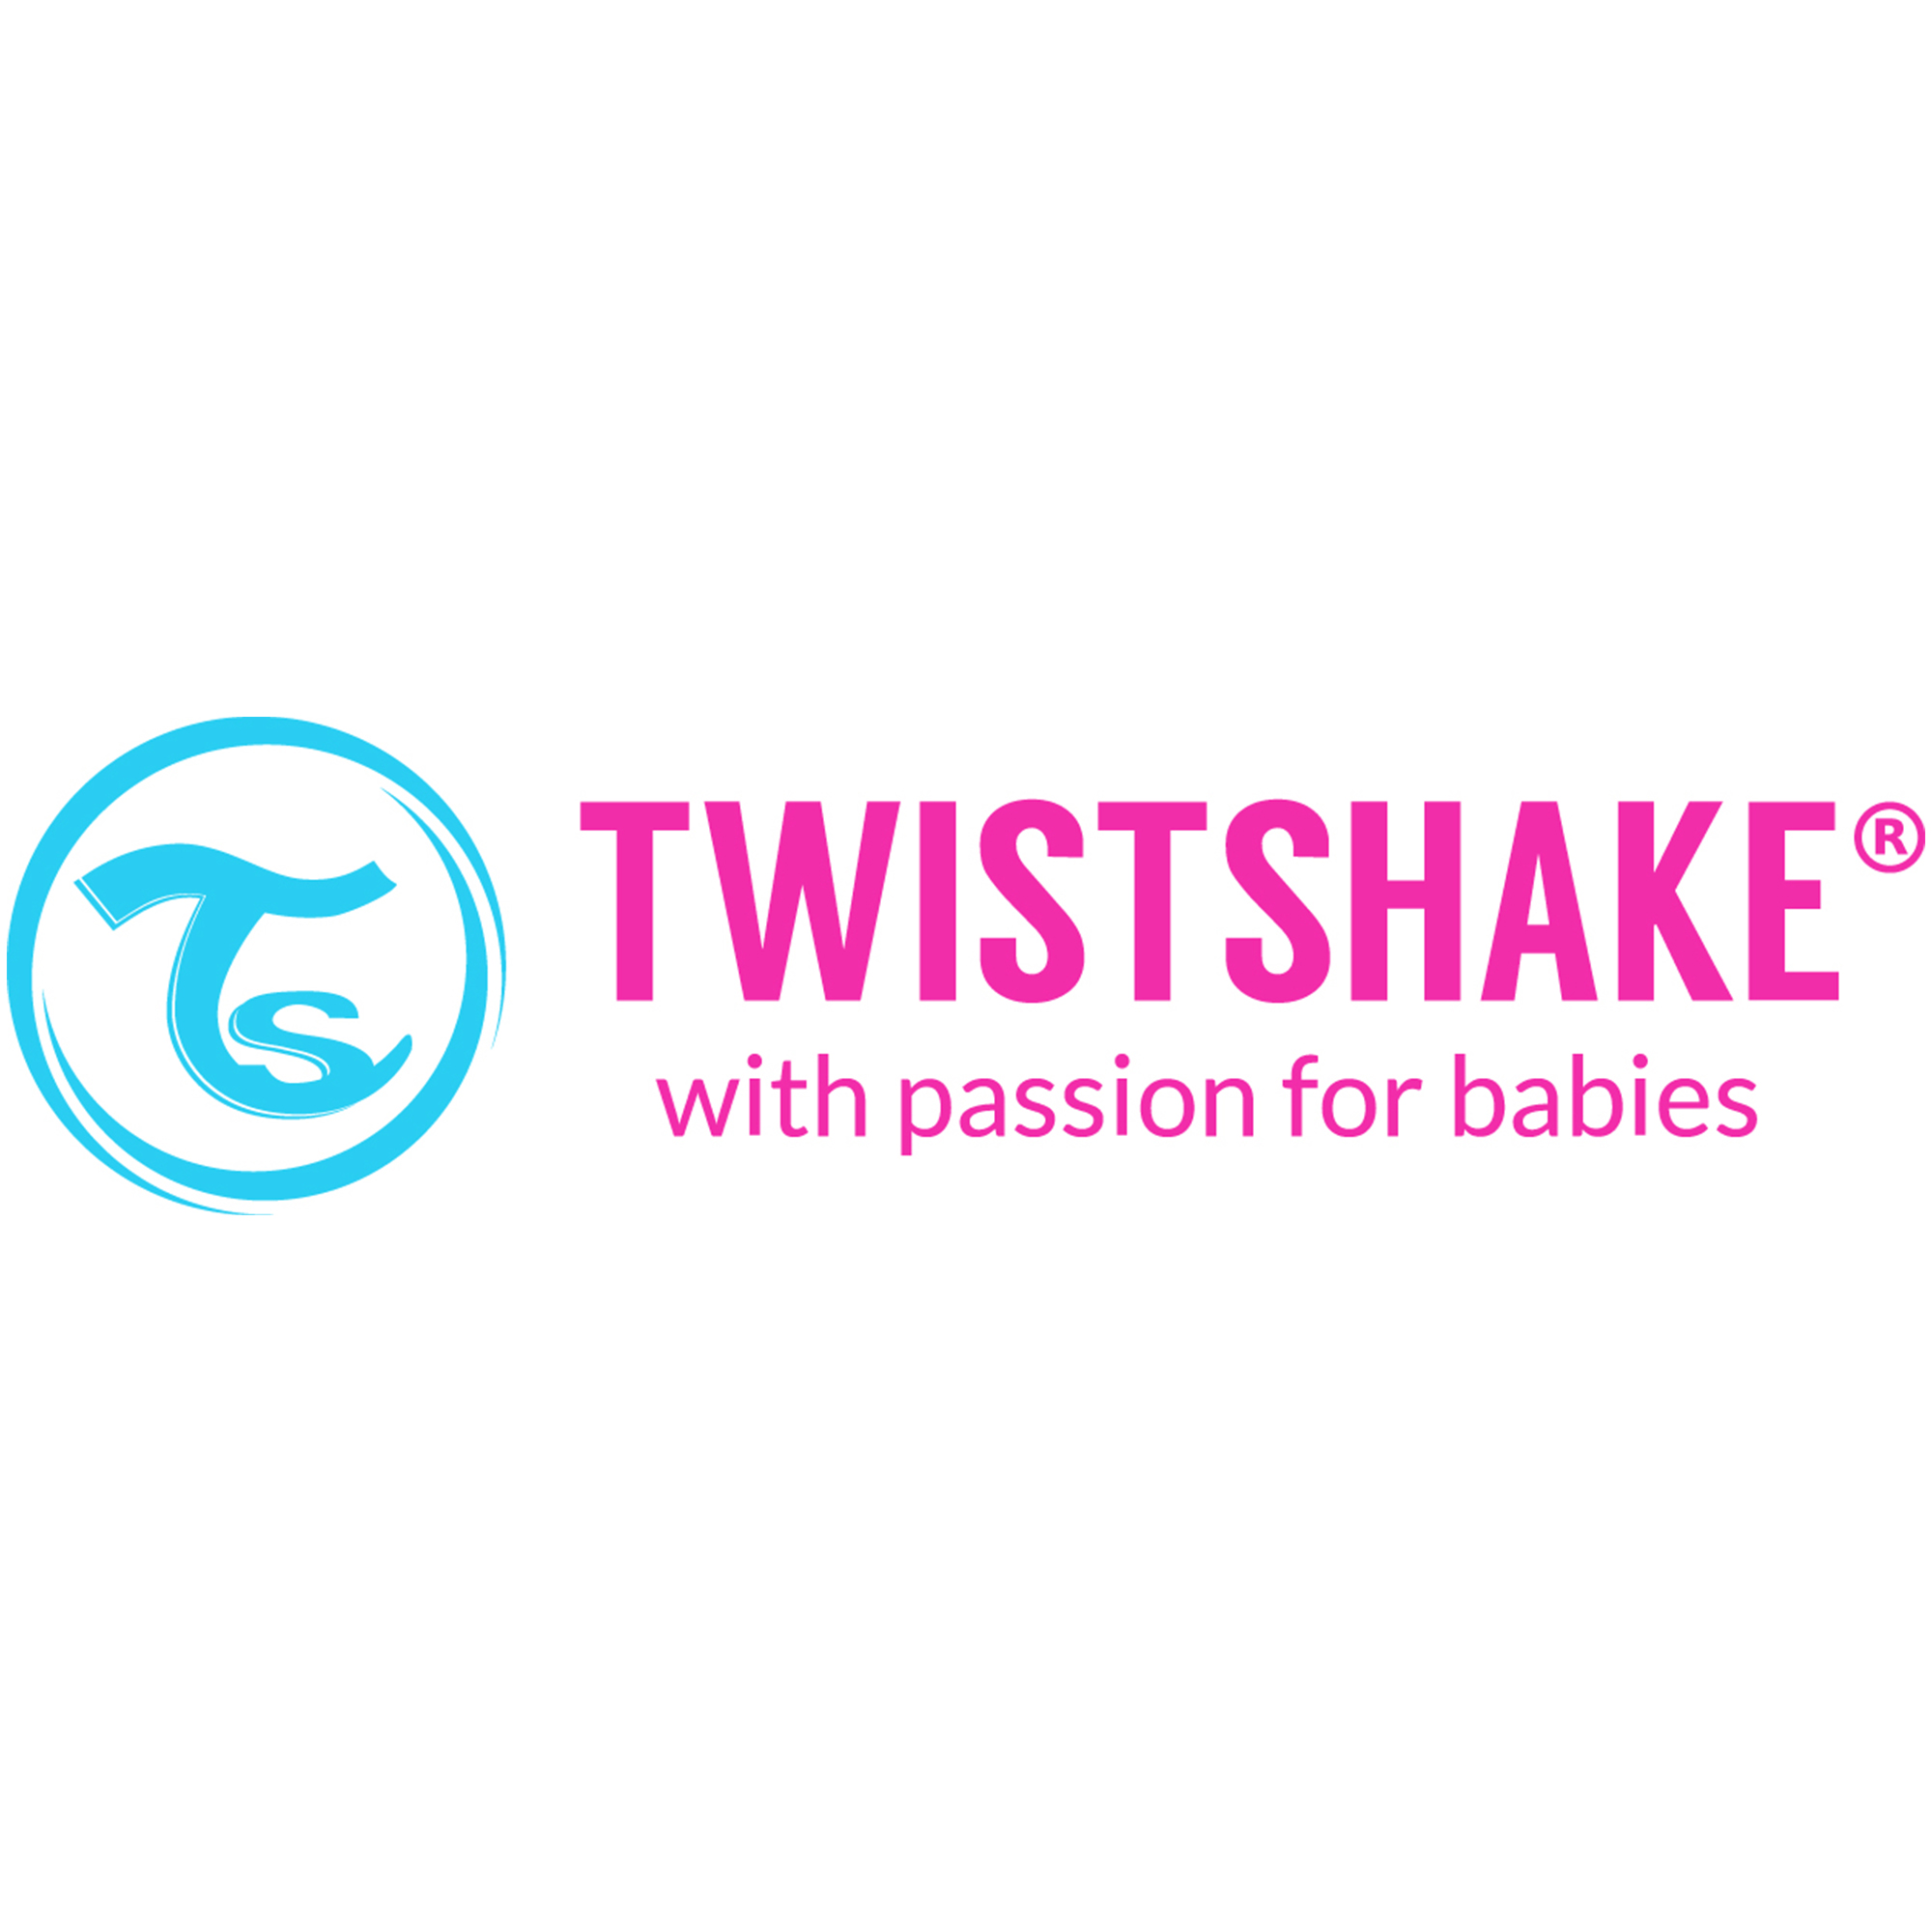 TwistShake-Ergonomic-Spill-free-Fruit-Infuser-Kid-Cup-360ml-Sippy-Cup thumbnail 8